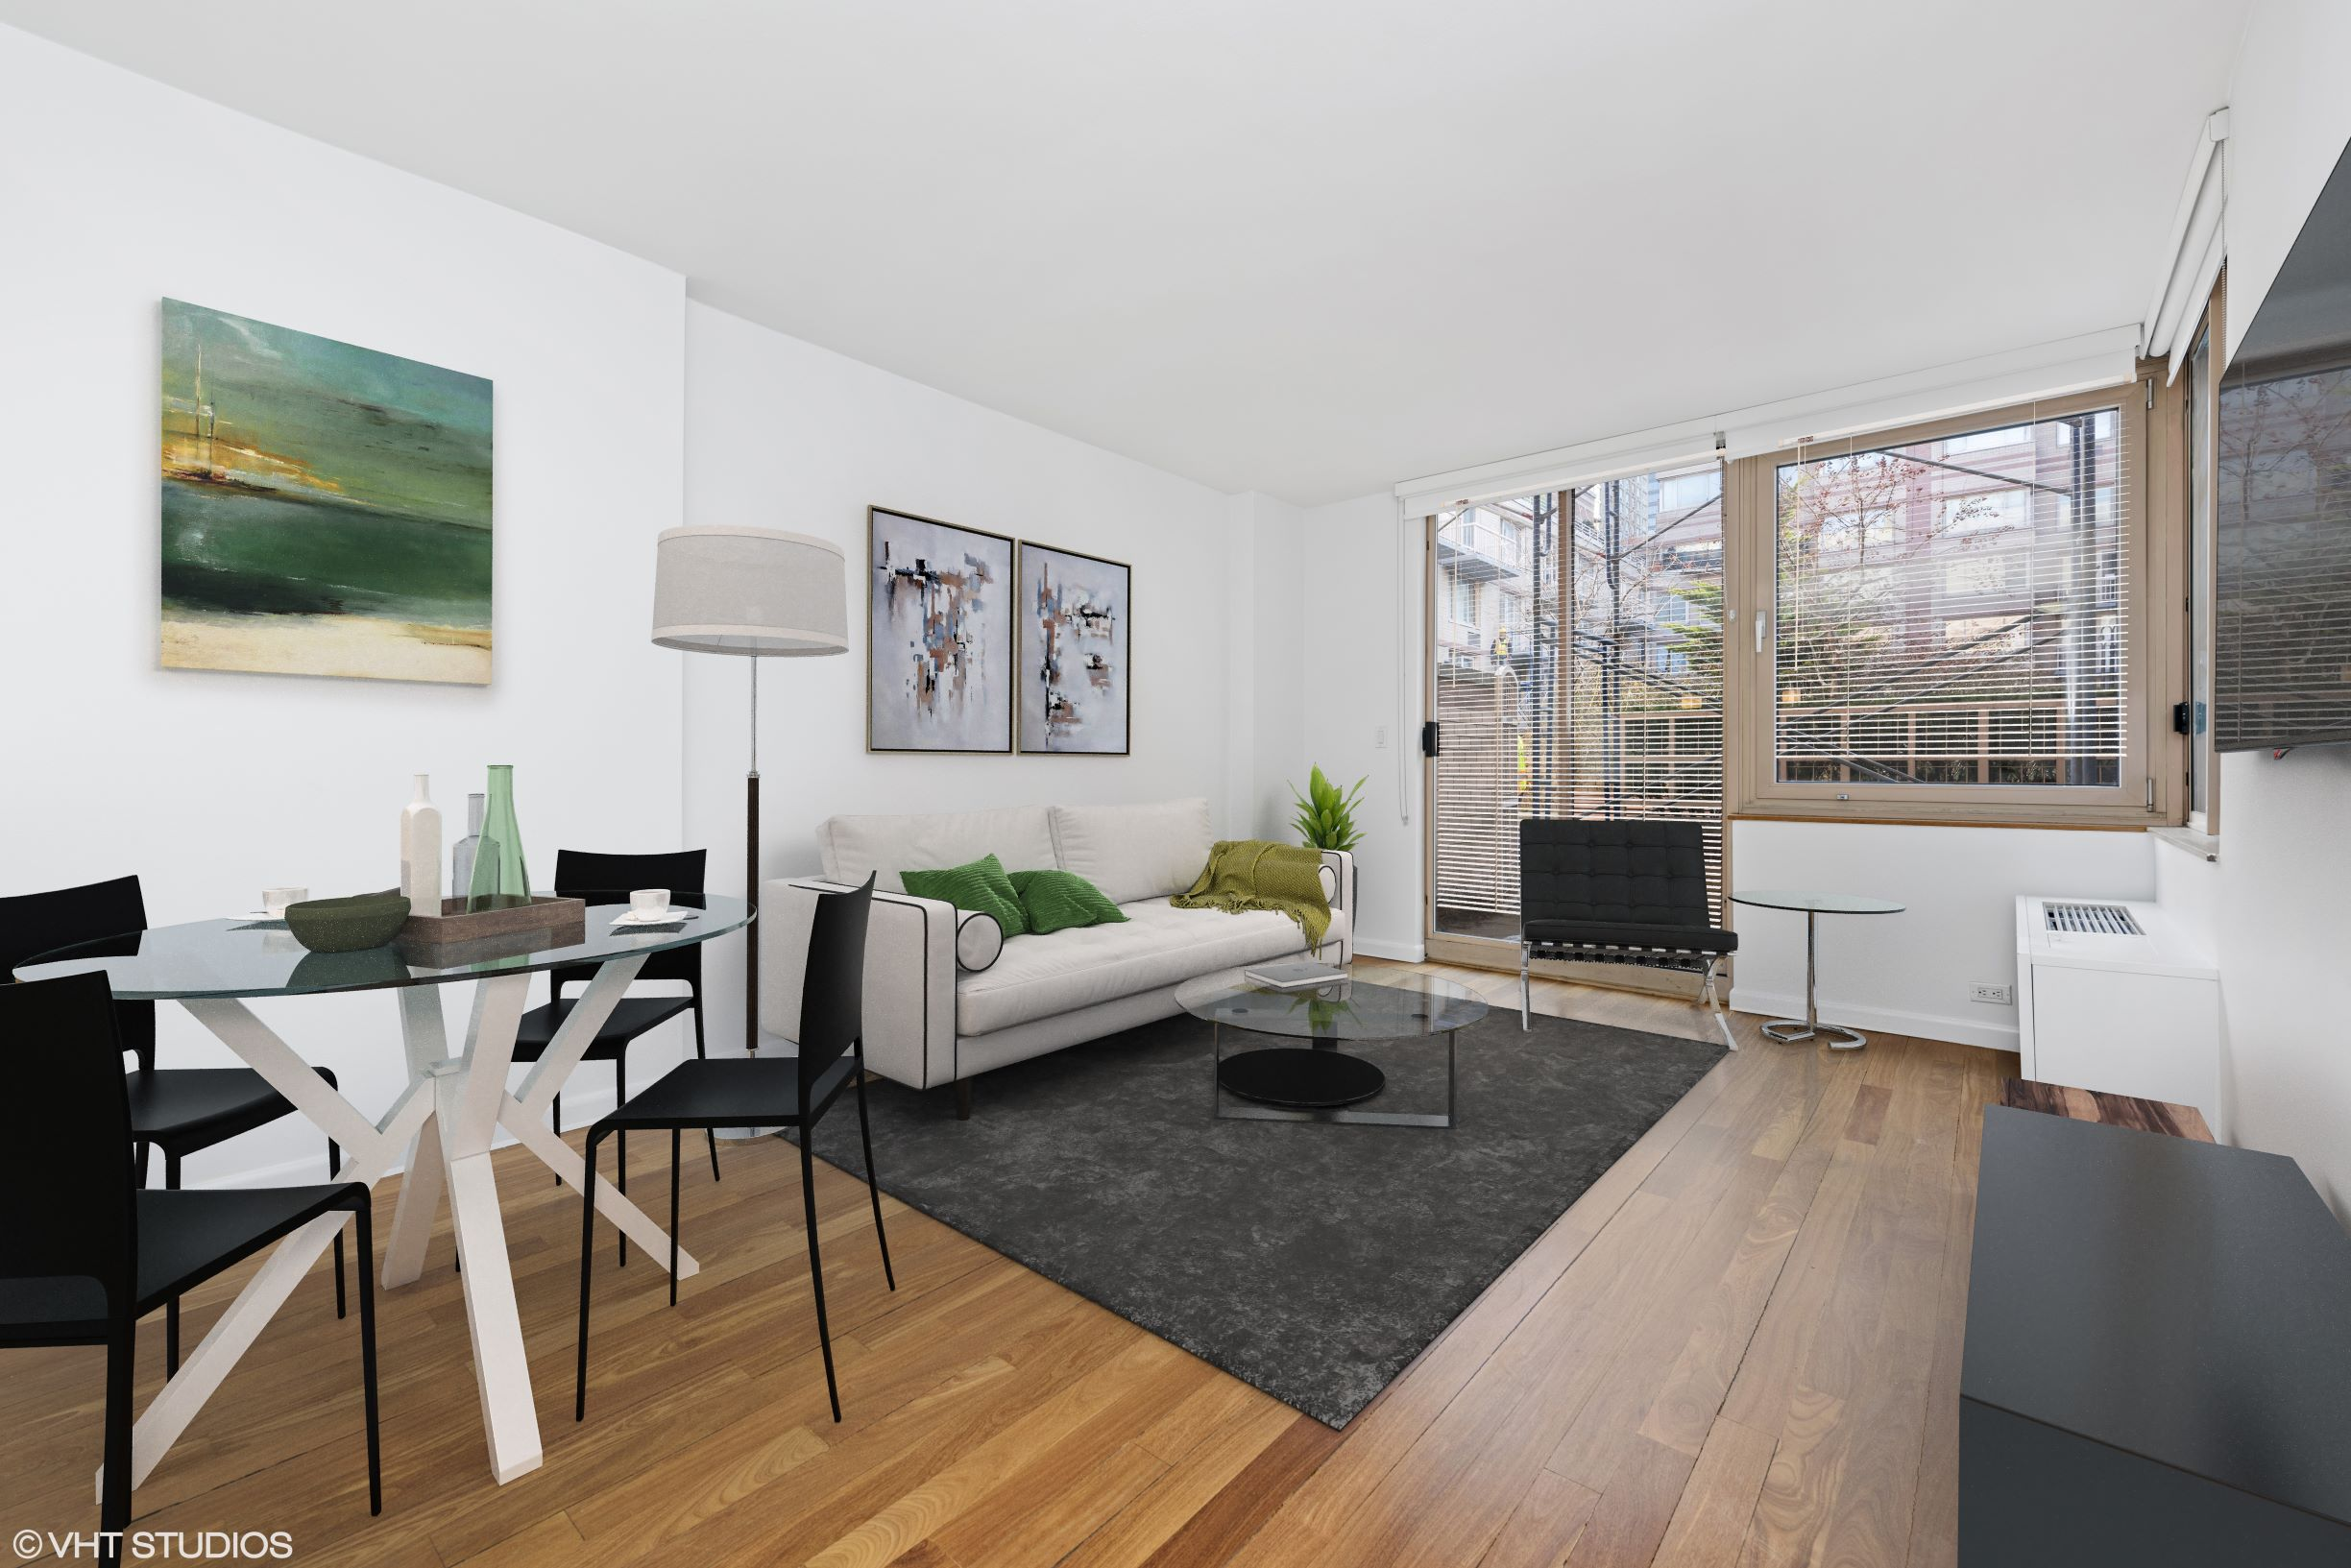 393 West 49th Street, New York, New York, New York, United States 10019, 1 Bedroom Bedrooms, ,1 BathroomBathrooms,Condo,Rented,Worldwide Plaza,West 49th Street,2,1085